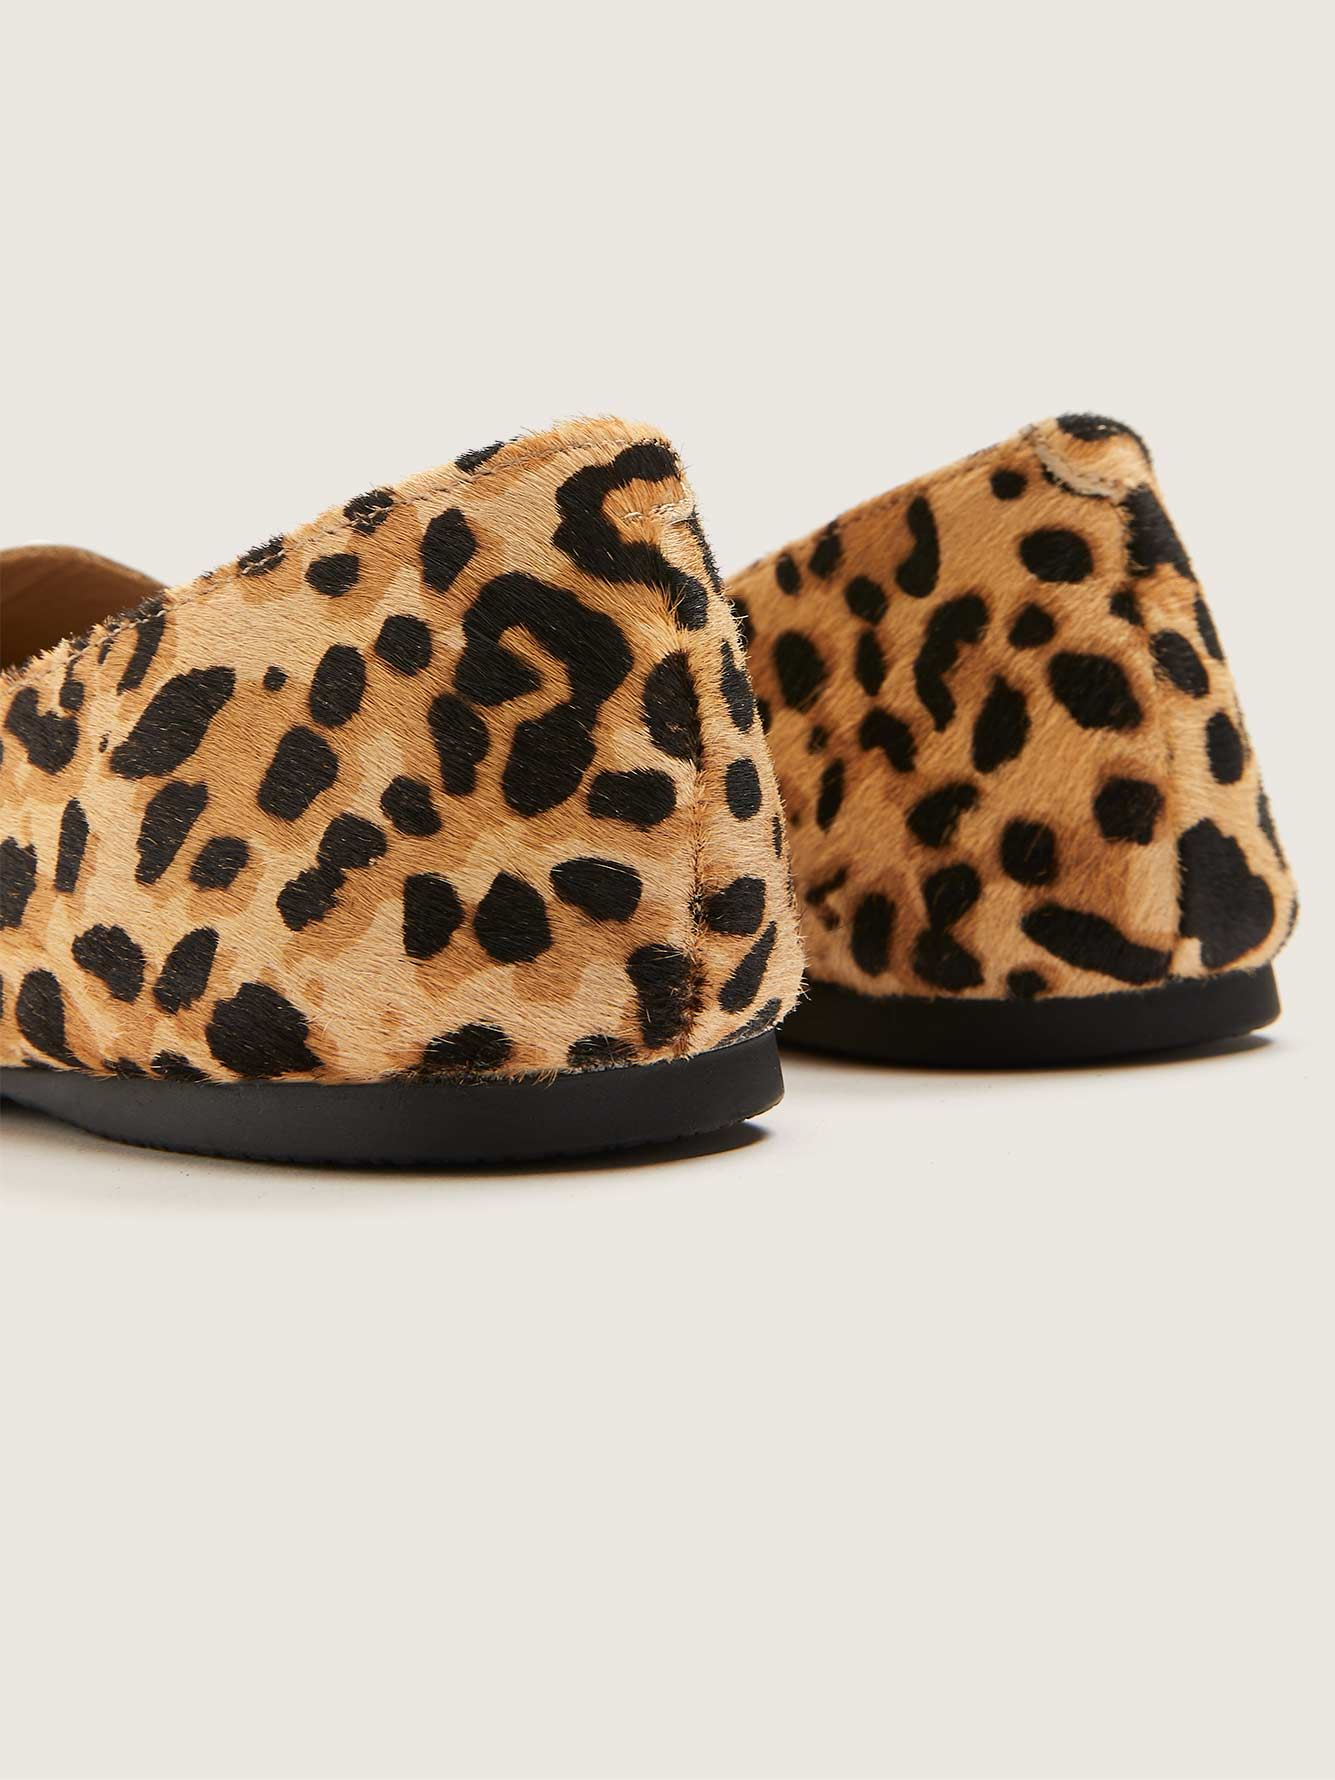 Leopard Feather Loafer - Steve Madden